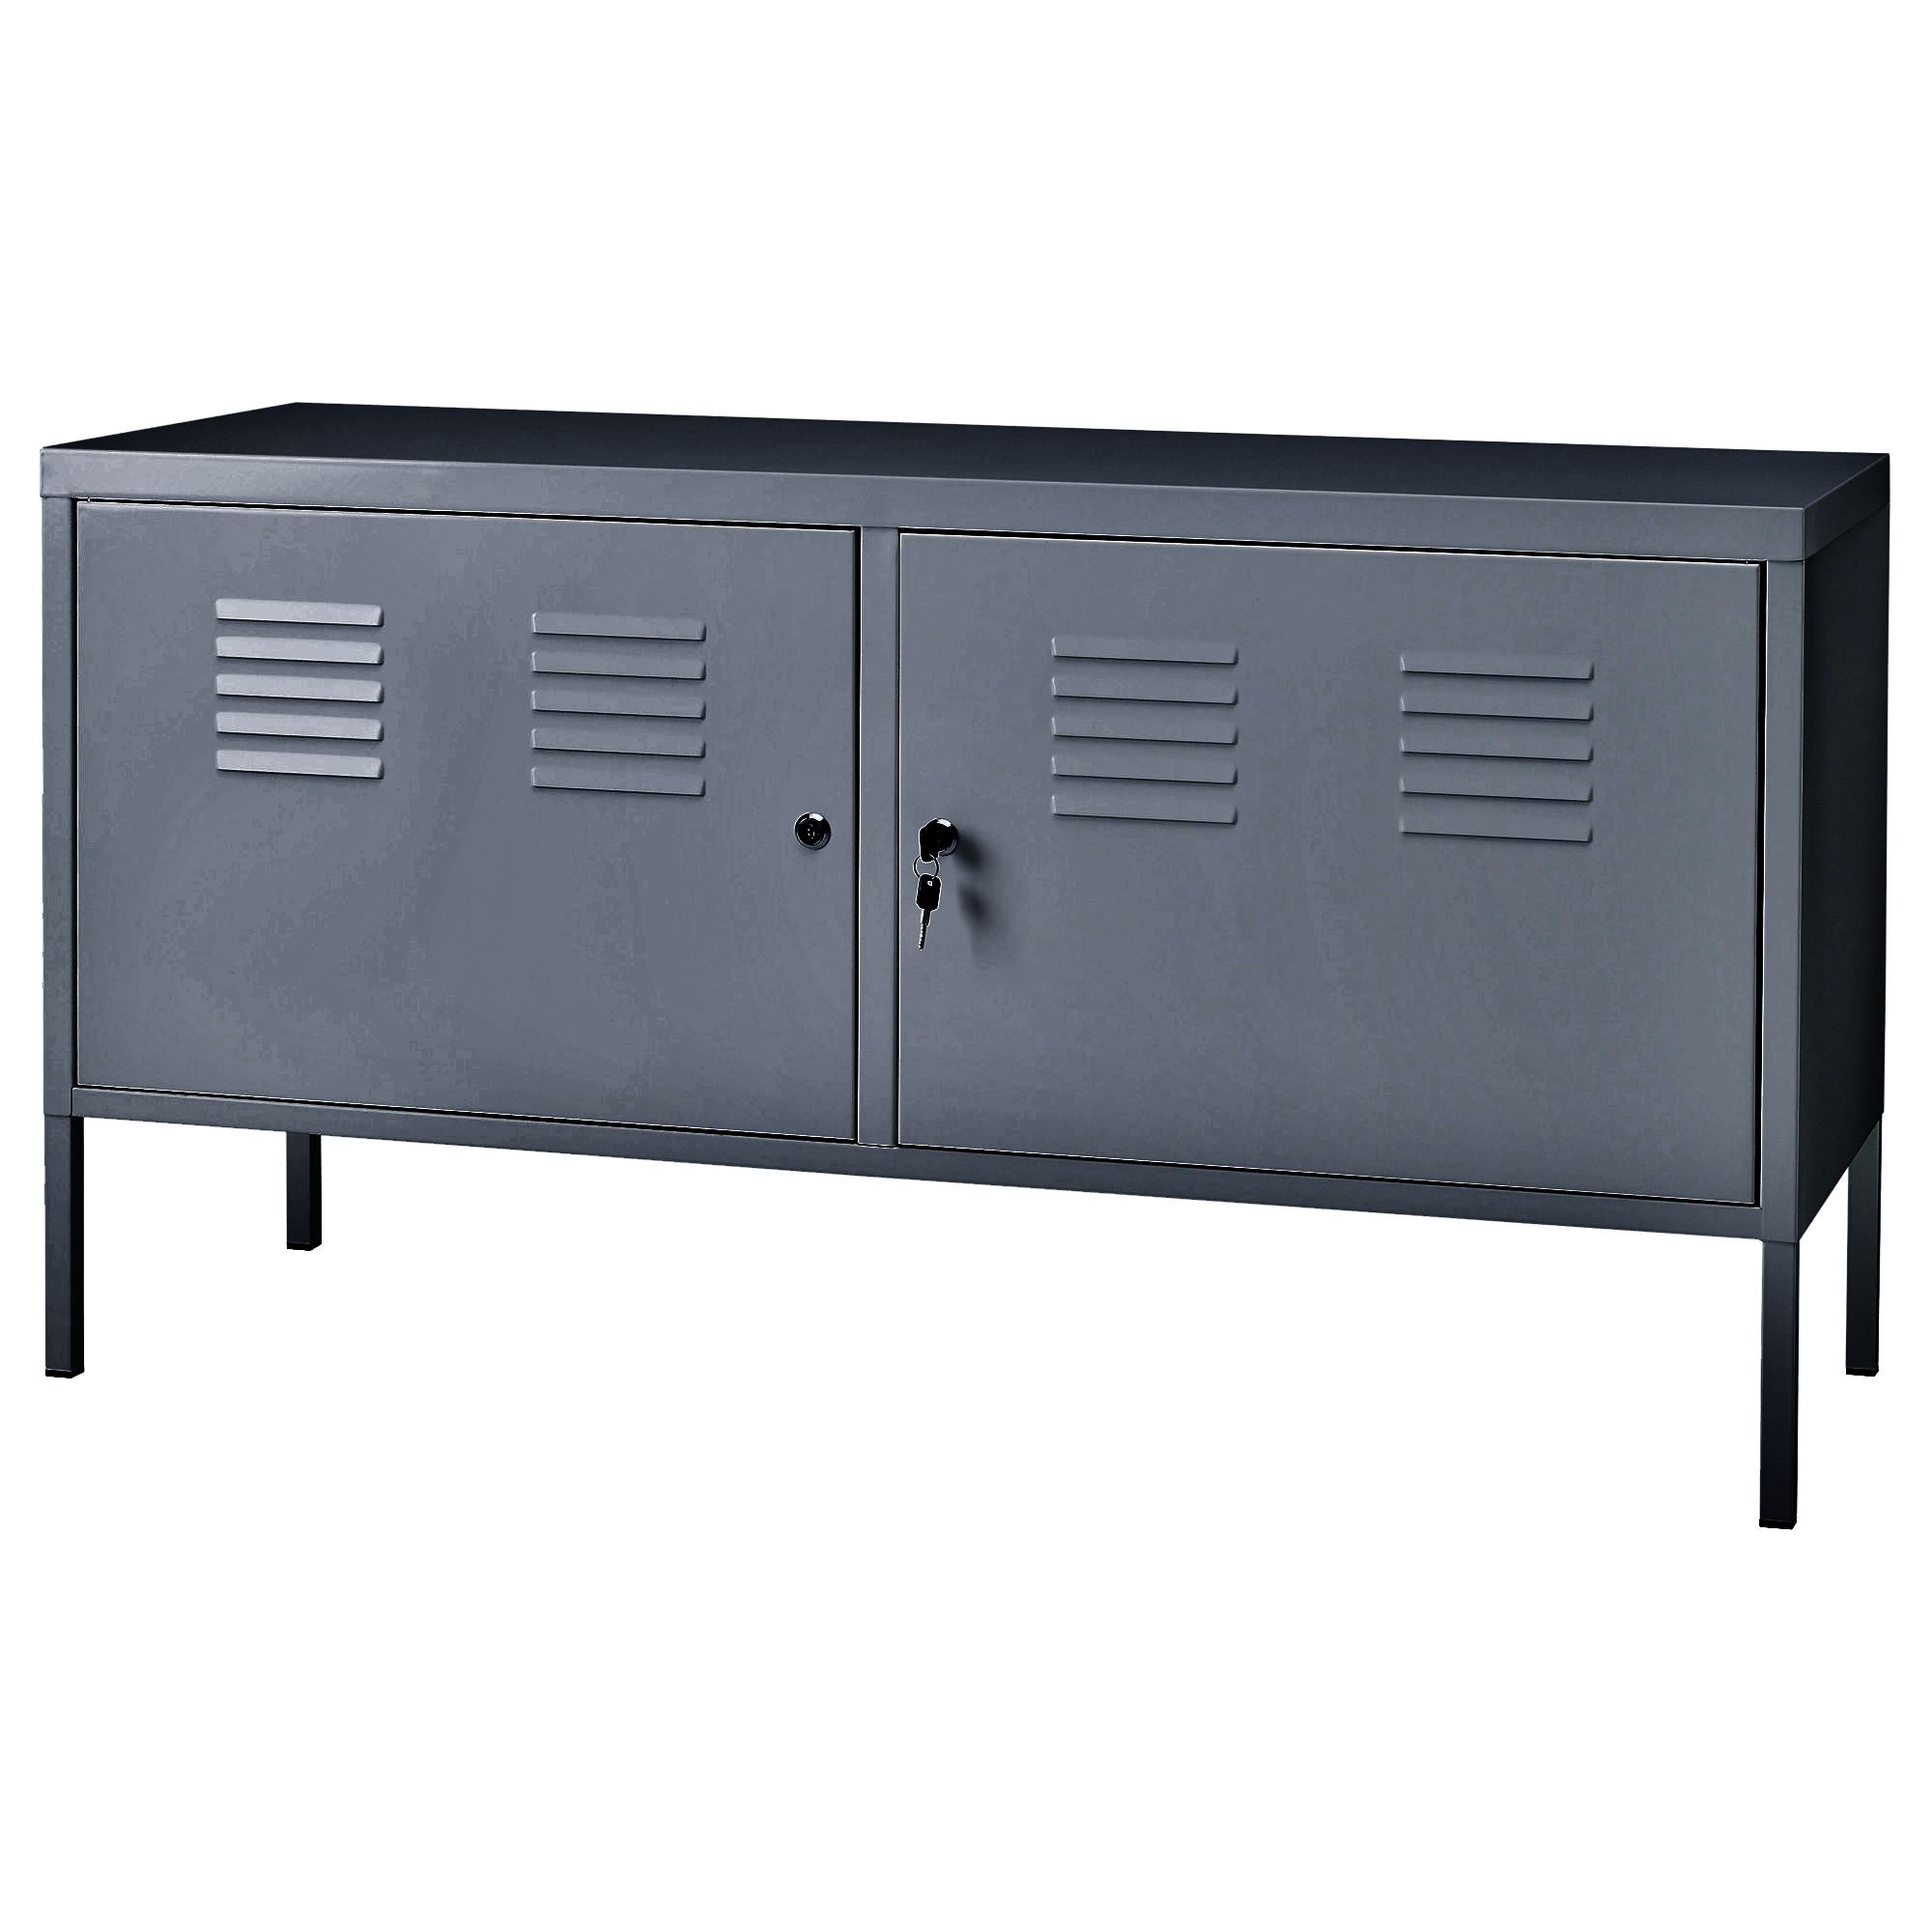 Spray Paint An Ikea Ps Tv Cabinet A Dark Seal Grey To Blend